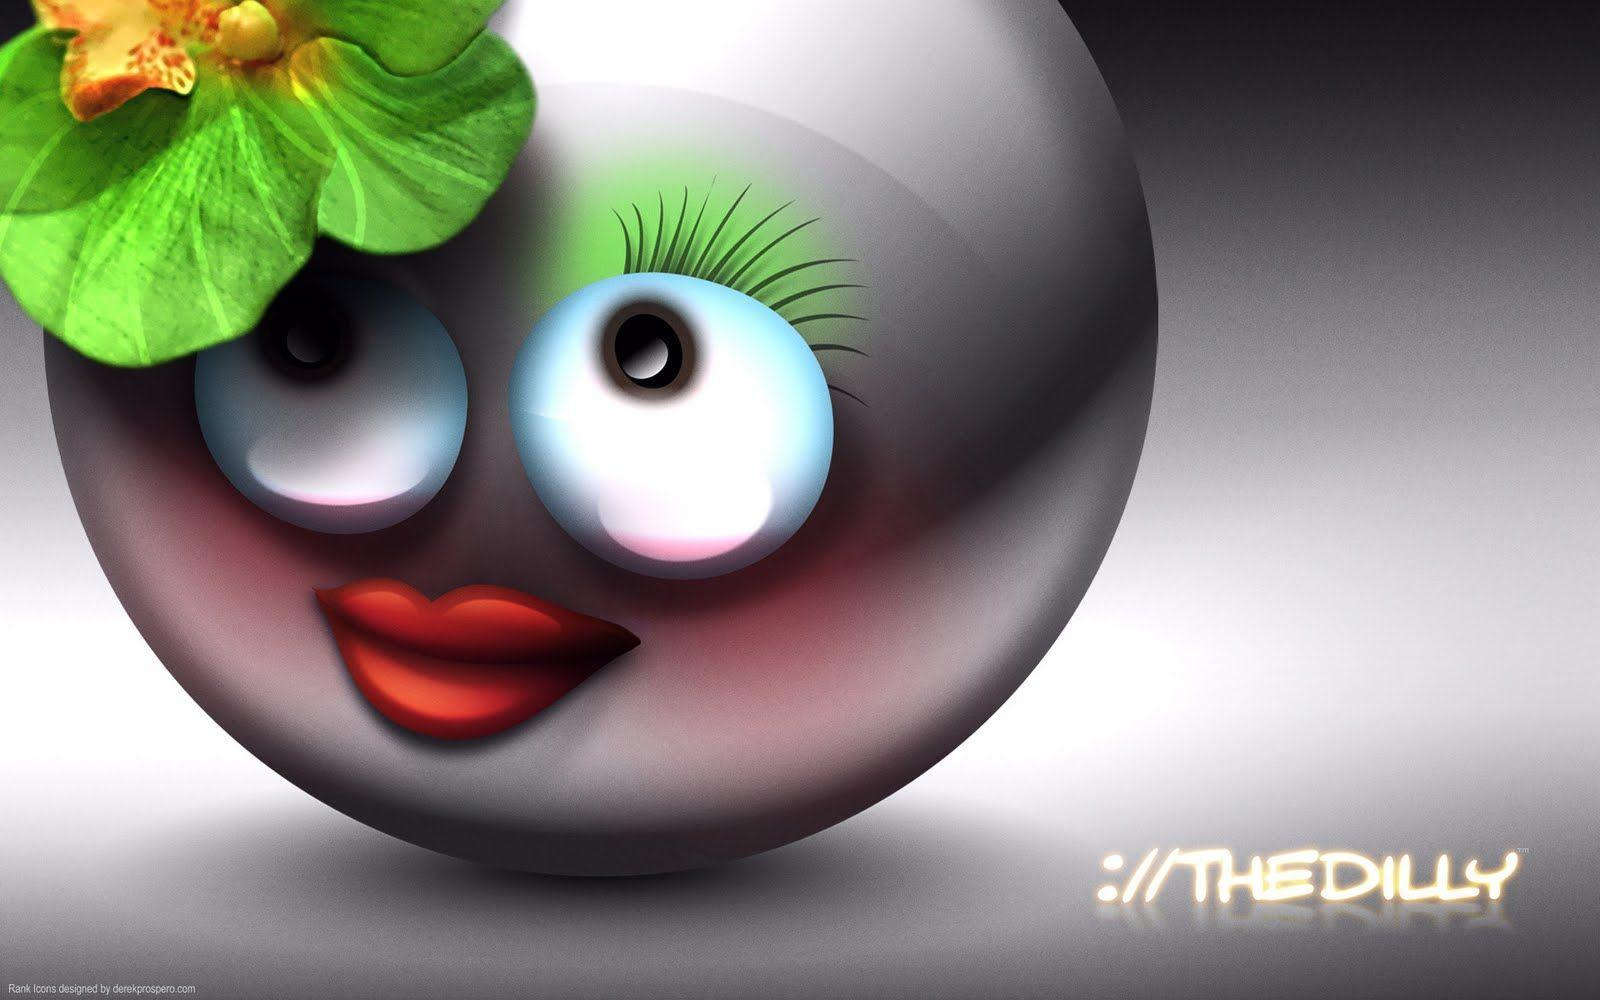 Free download funny 3d cartoon wallpapers. Funny 3D Cartoon Wallpapers - Wallpaper Cave